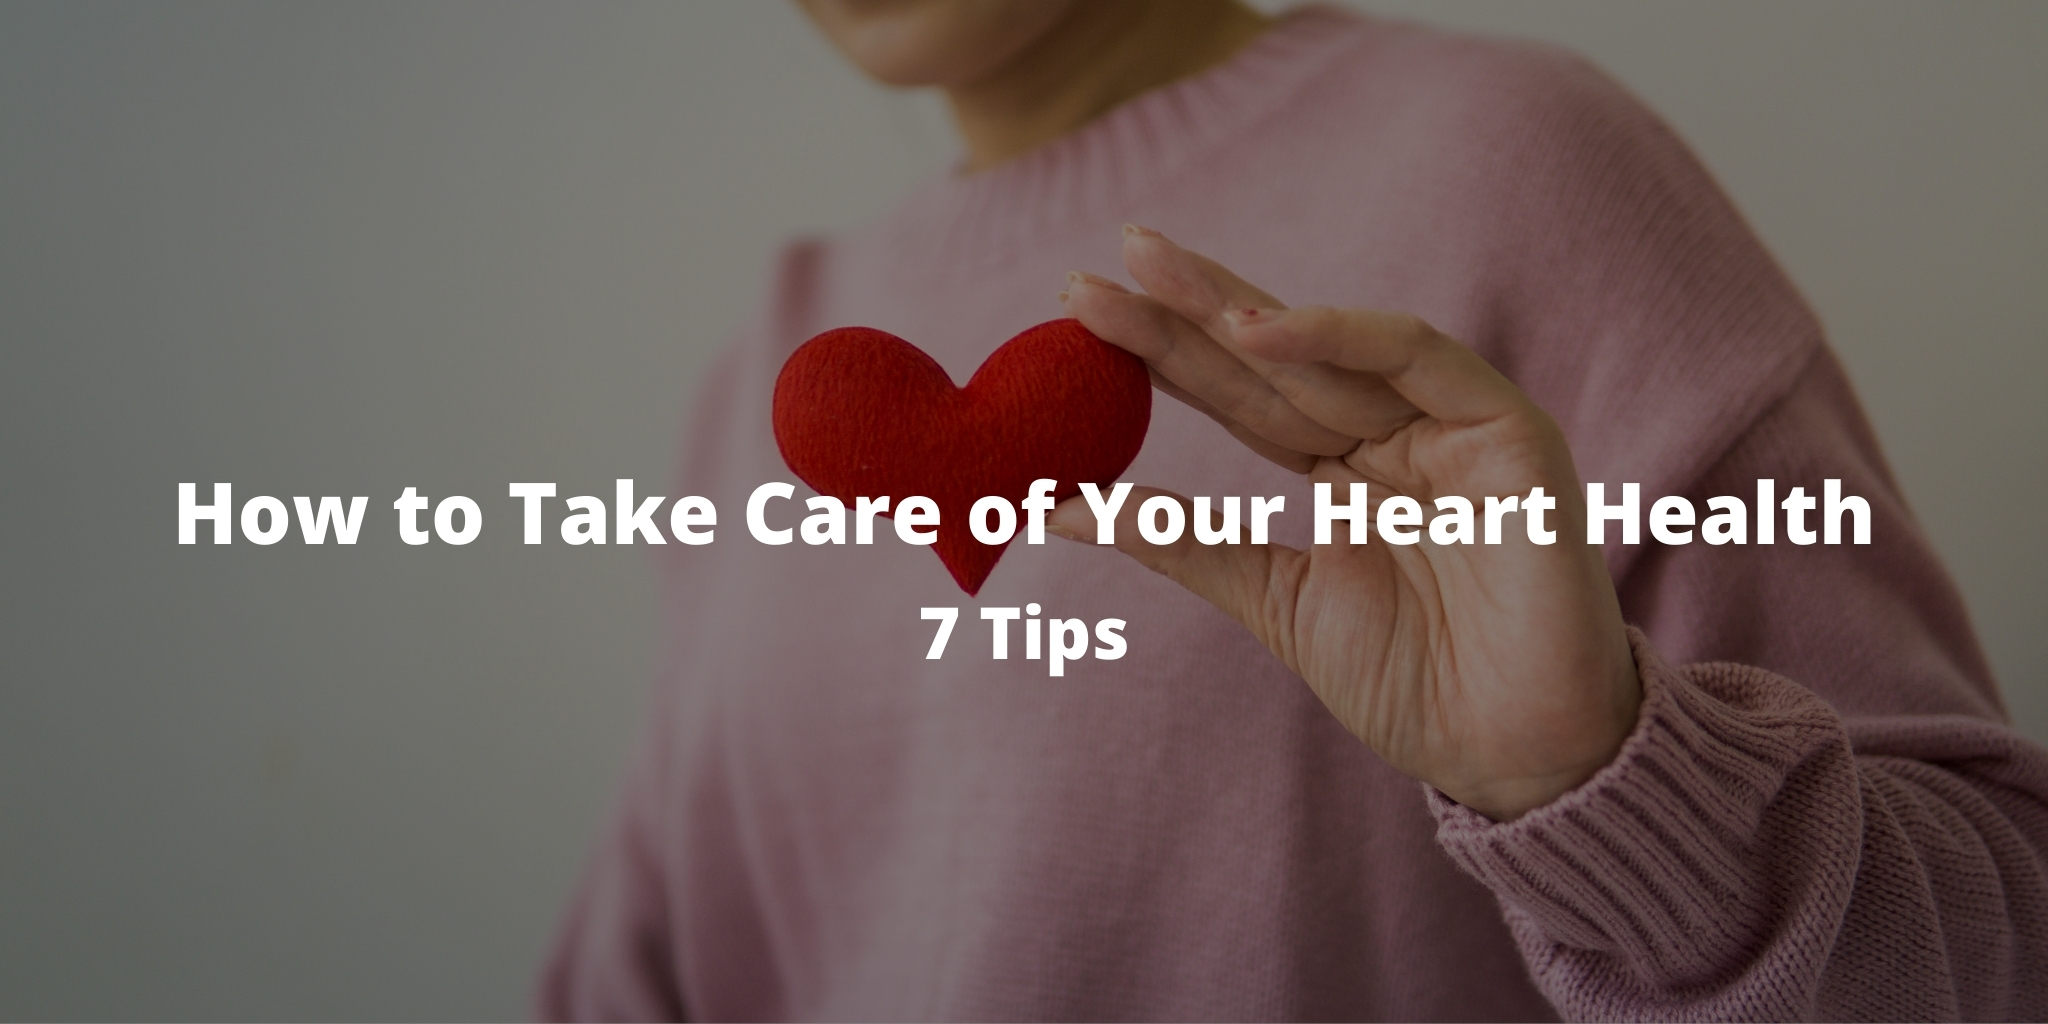 How to Take Care of Your Heart Health: 7 Tips